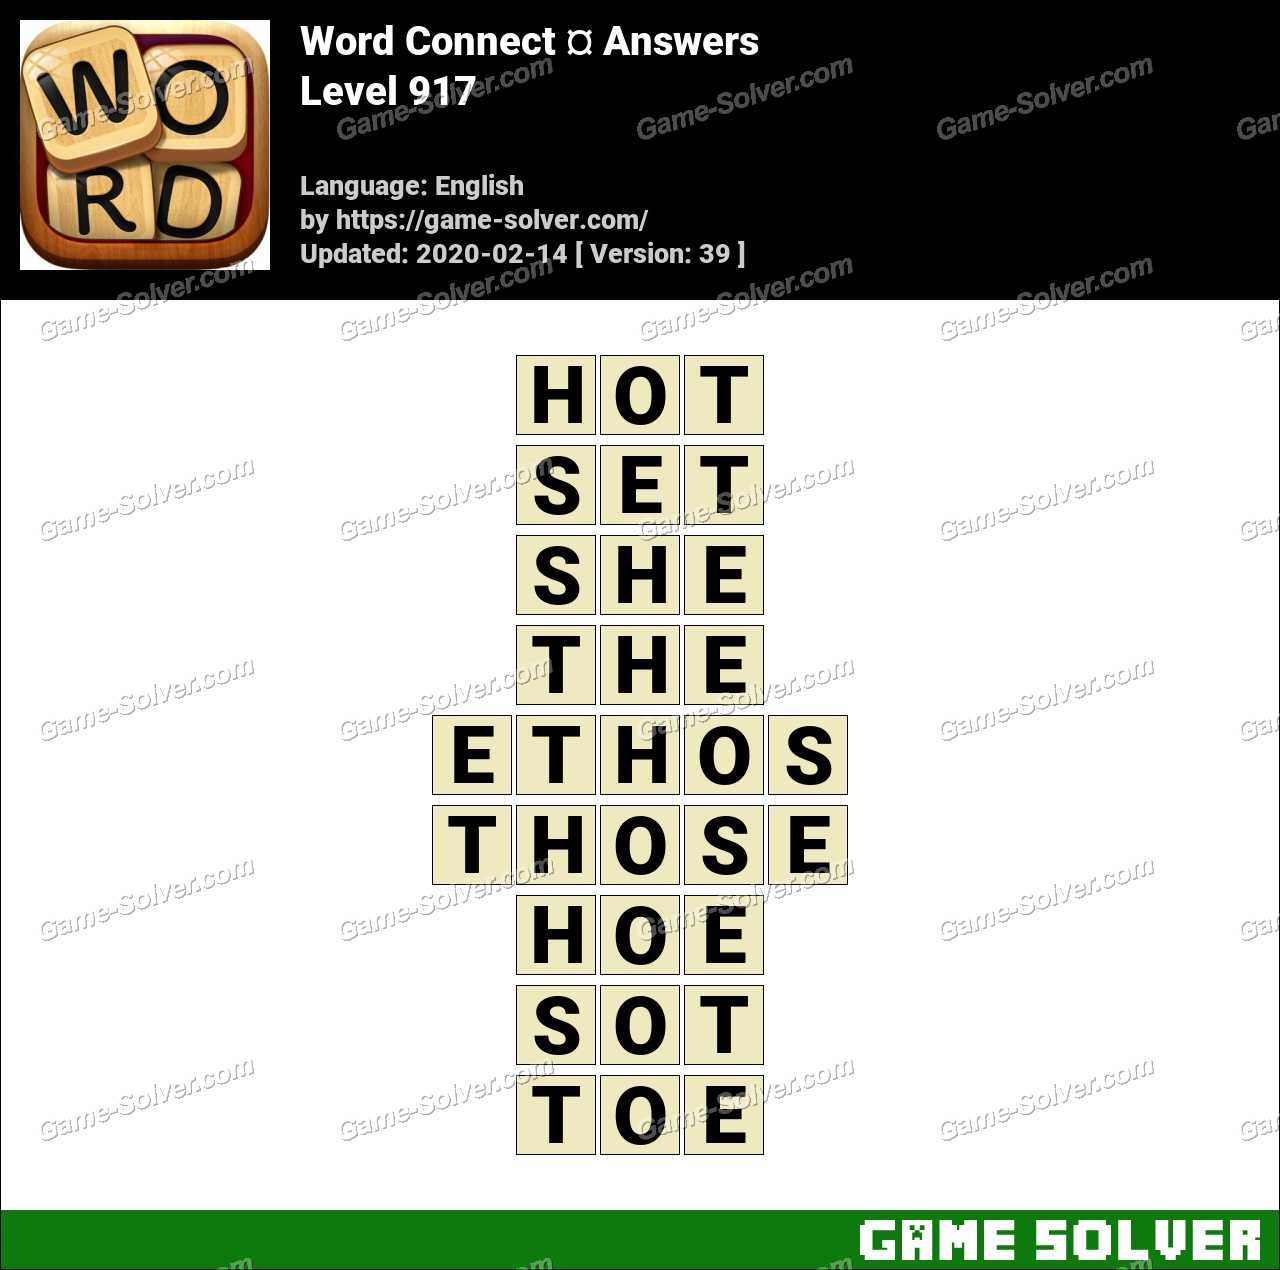 Word Connect Level 917 Answers